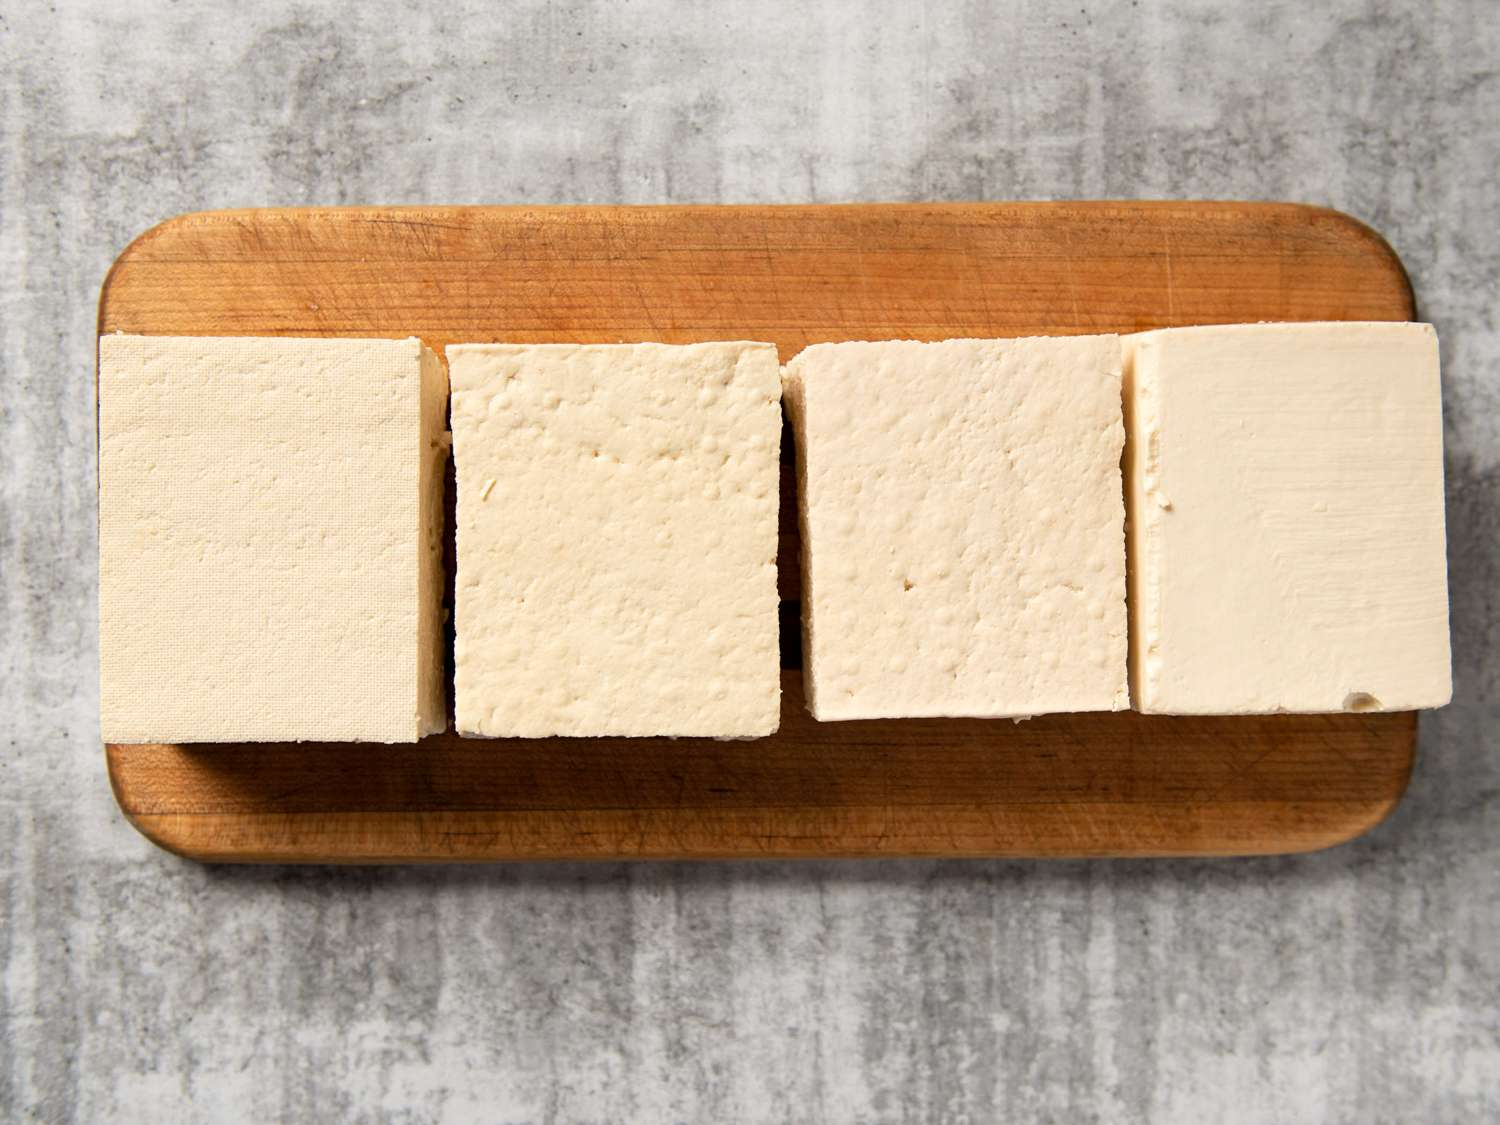 a group of different block tofu of varying firmness